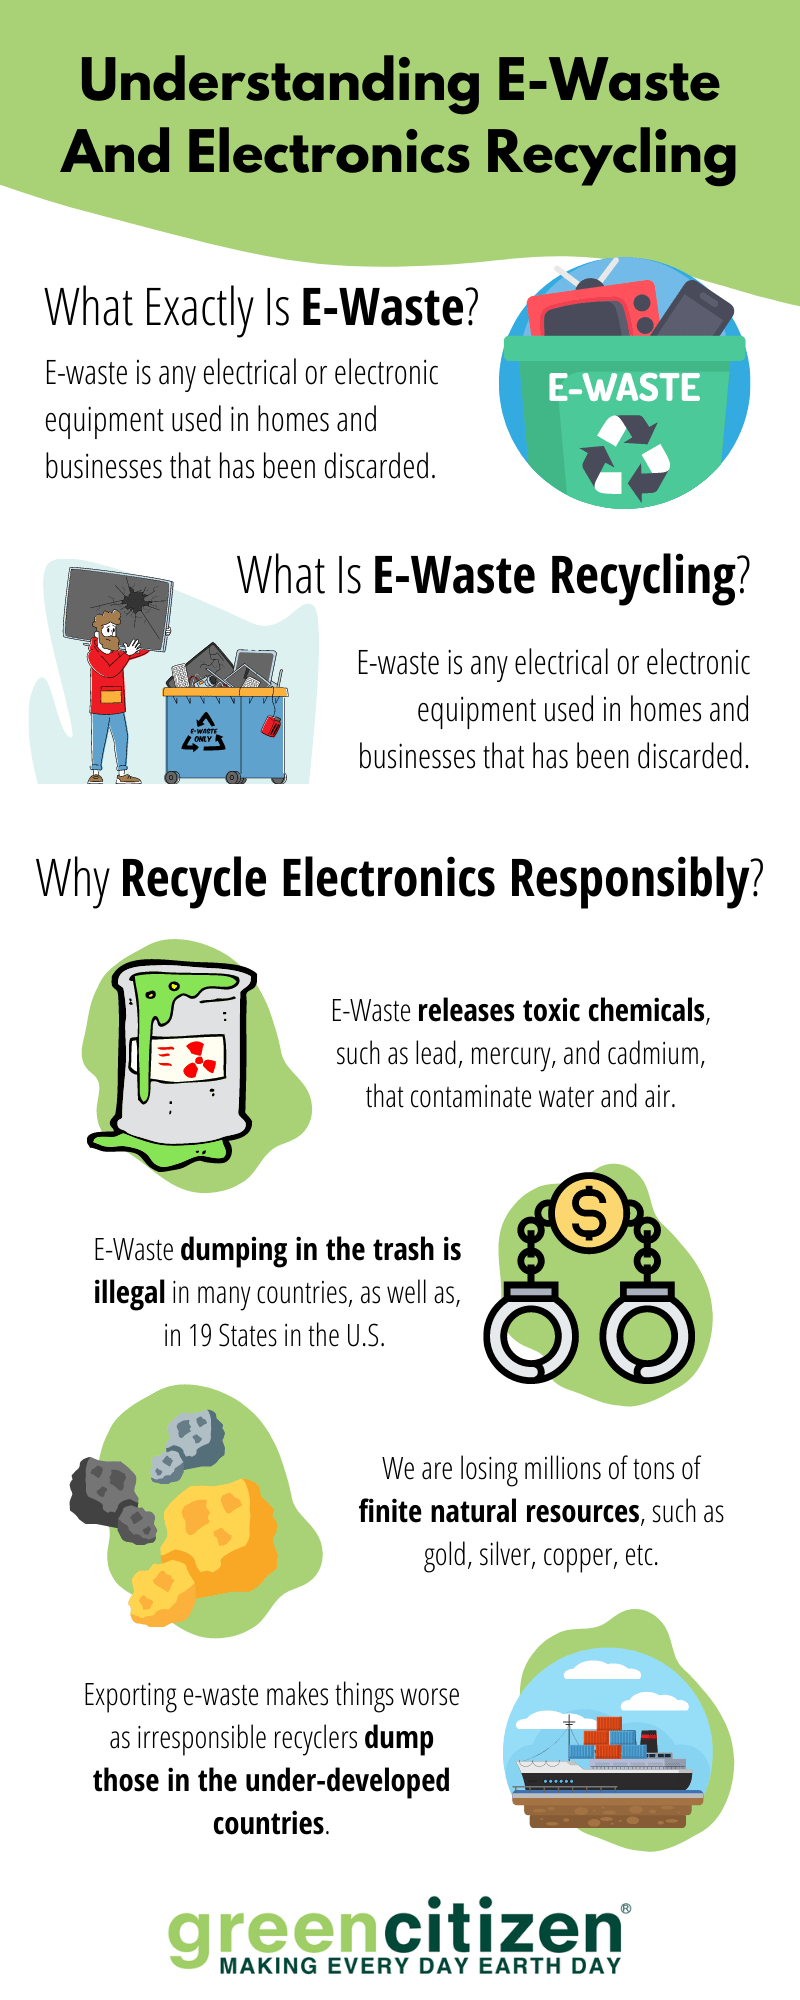 Understanding E-Waste And Electronics Recycling